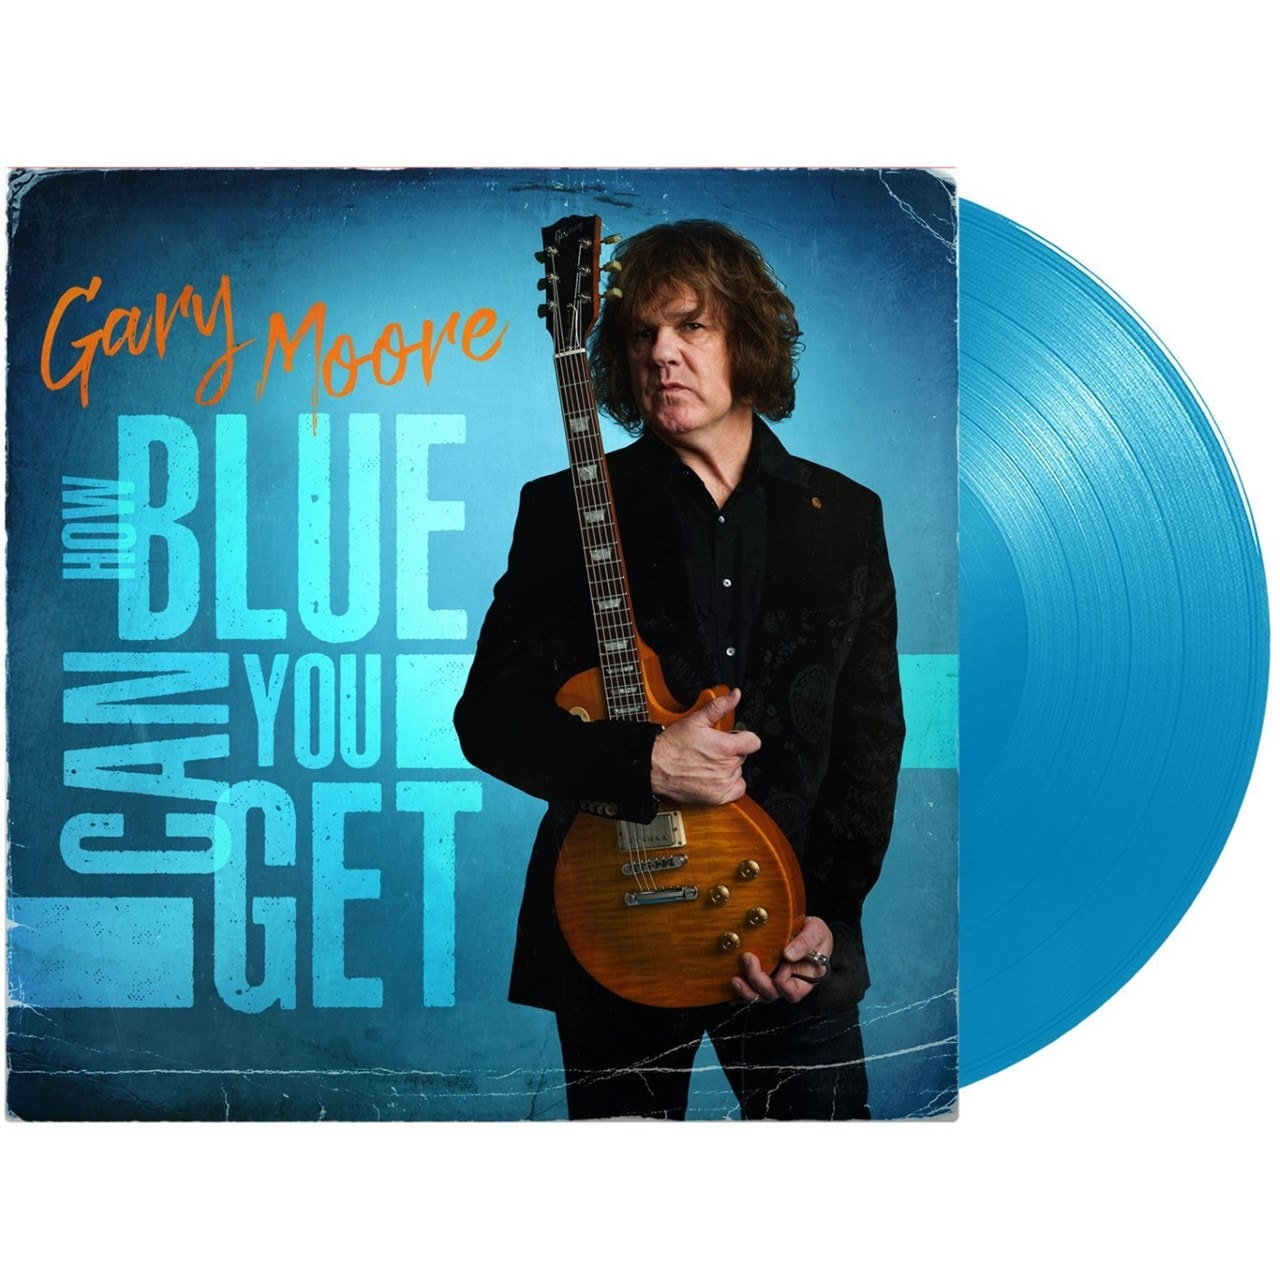 GARY MOORE - HOW BLUE CAN YOU GET (ltd edition blue vinyl)